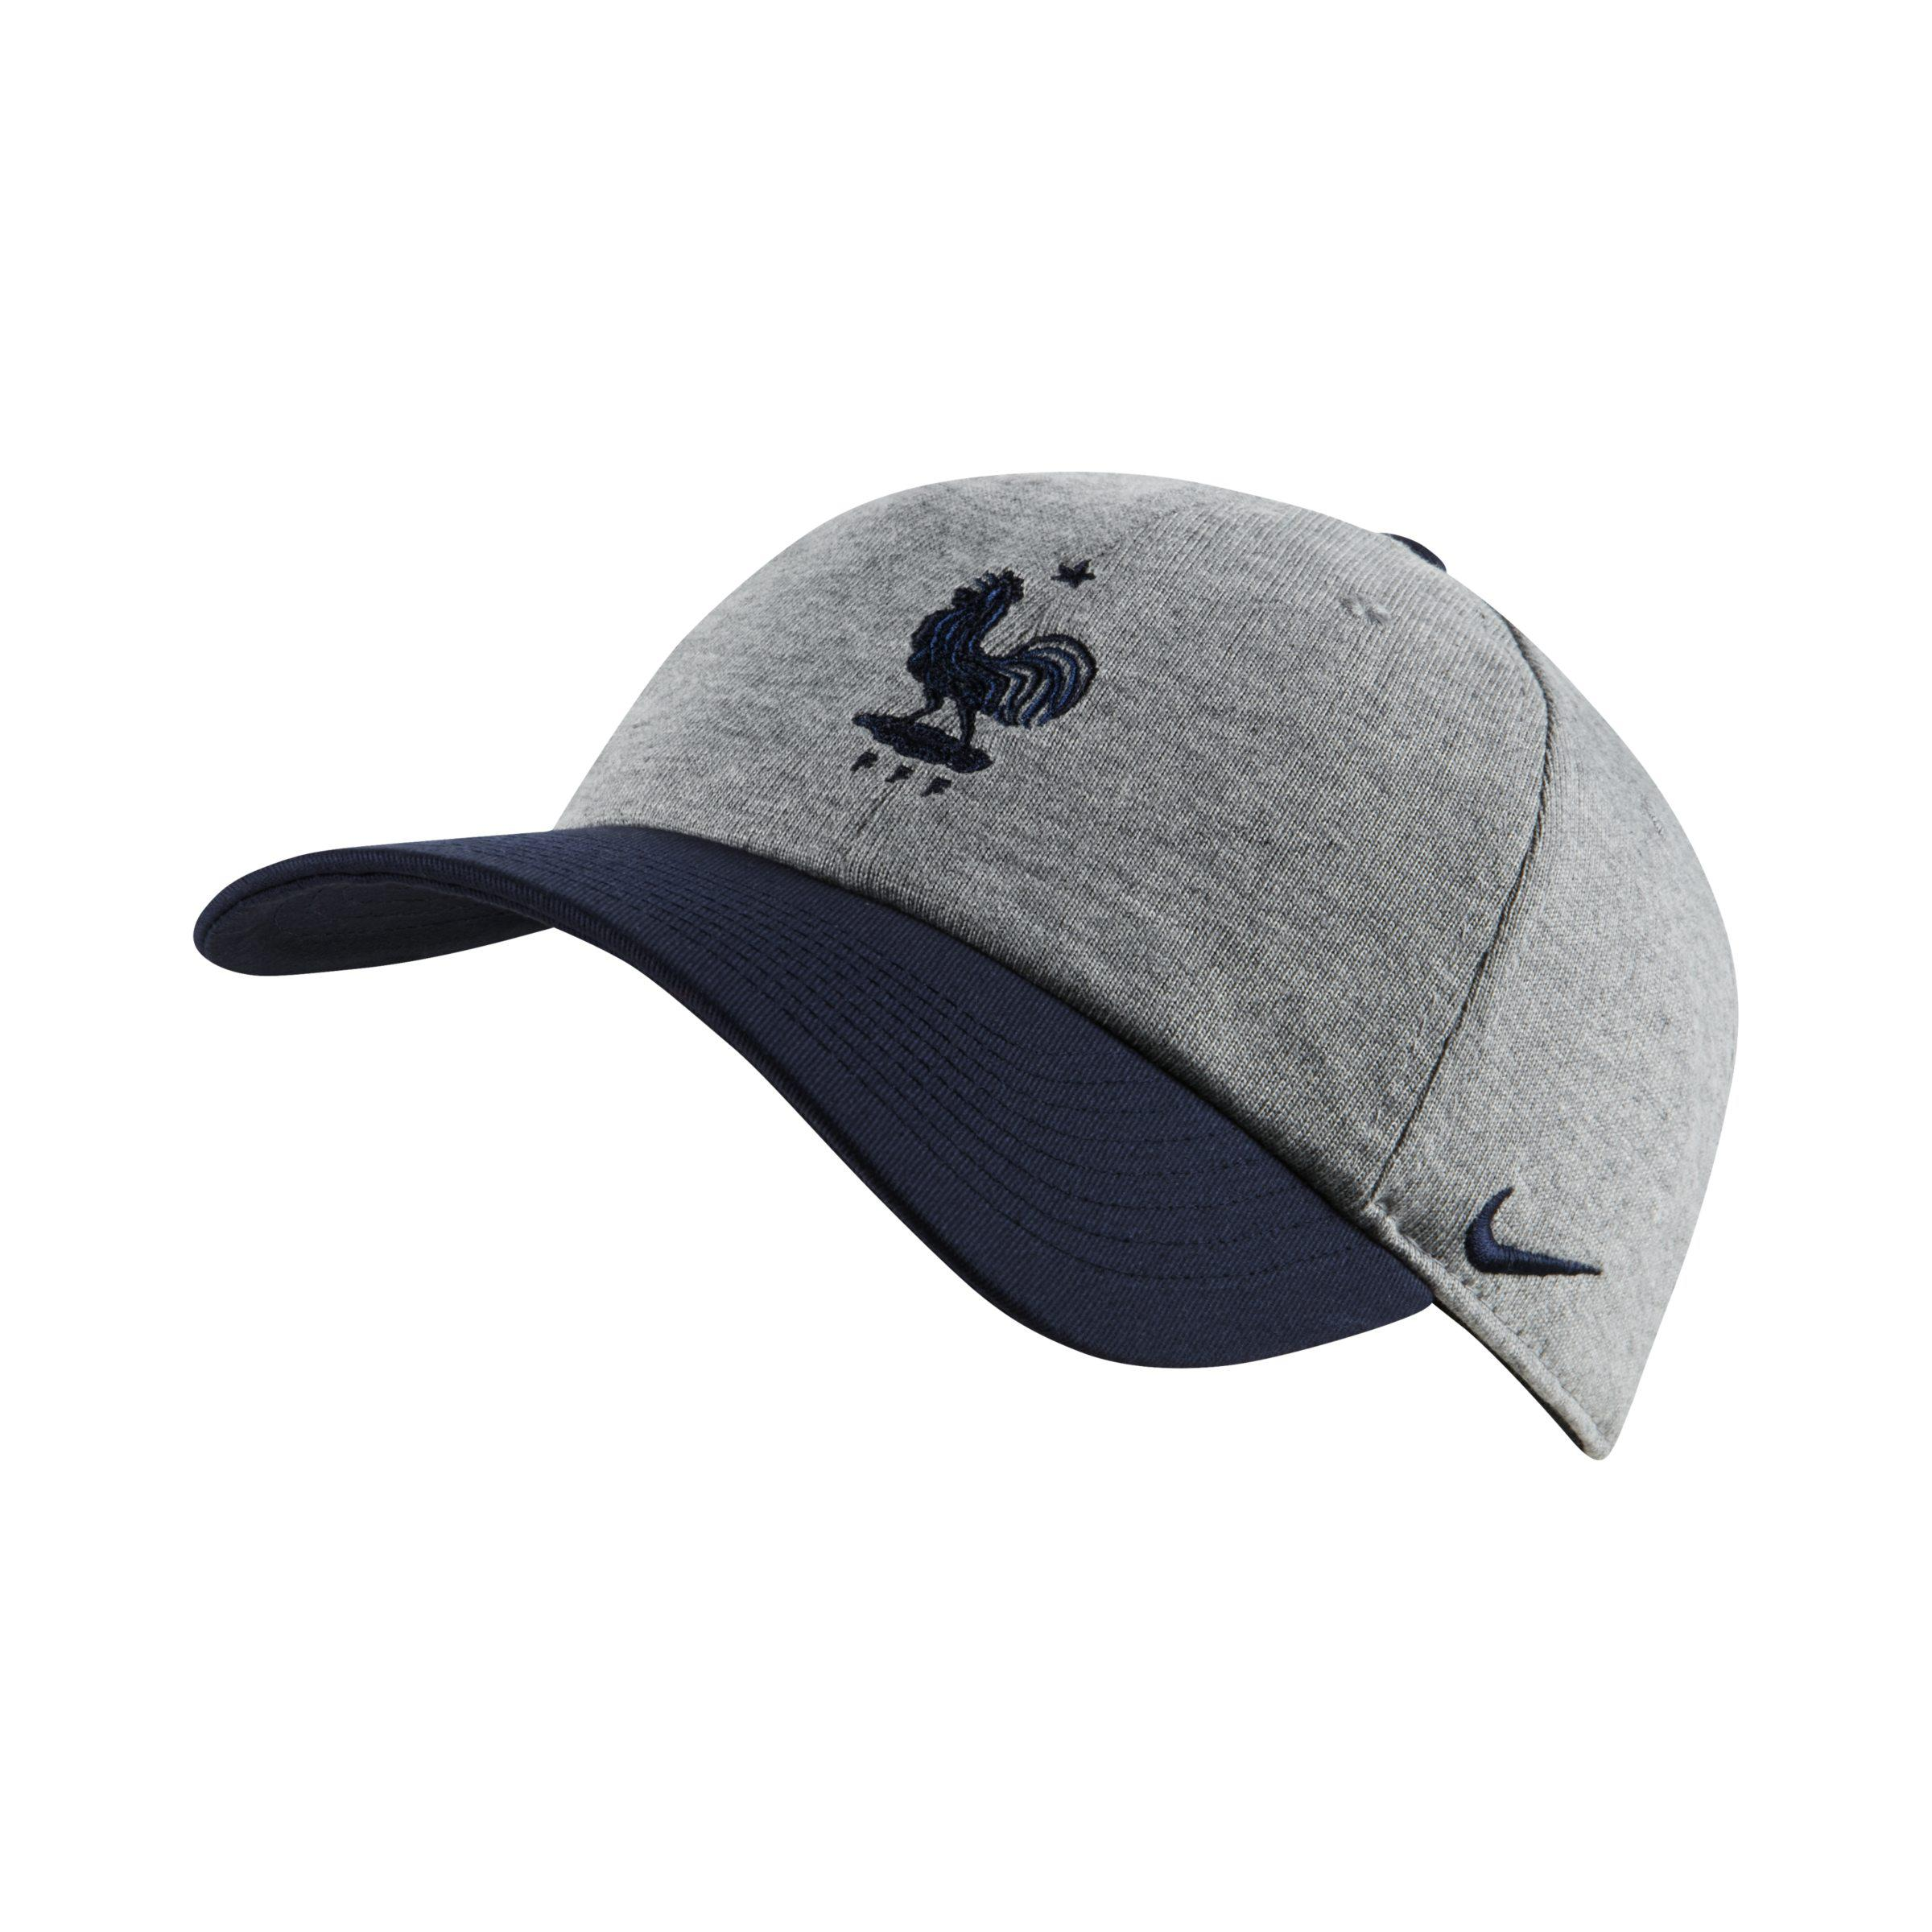 sports shoes 55866 5fce5 Nike Fff H86 Adjustable Hat in Gray - Lyst